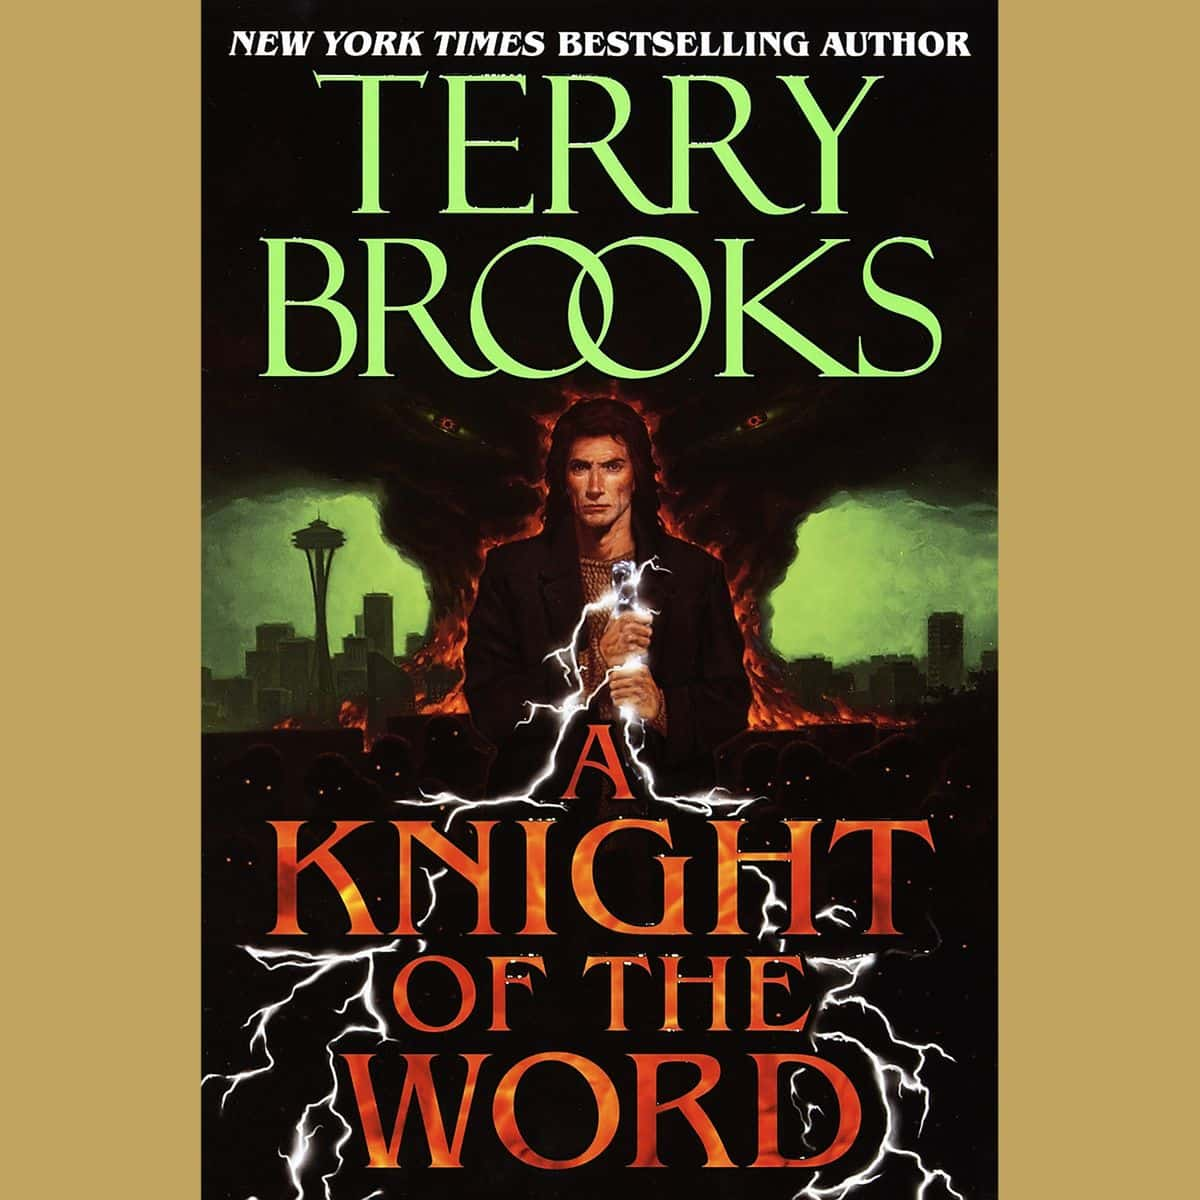 A Knight of the Word Audiobook Free Download